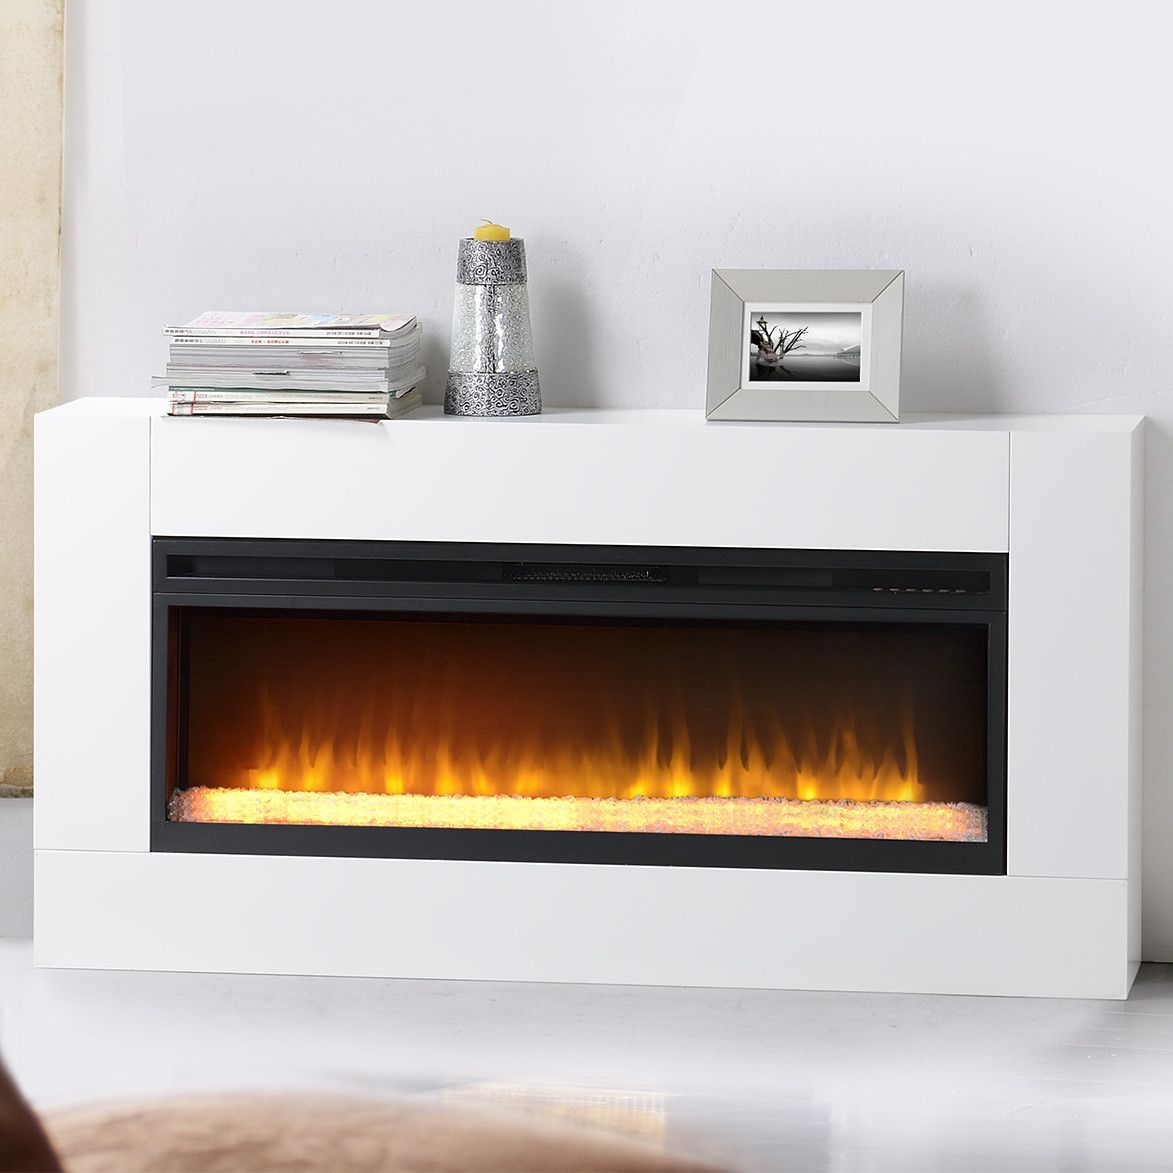 Mantova Freestanding Electric Fireplace Insert Home Modern Electric Fireplace Fireplace